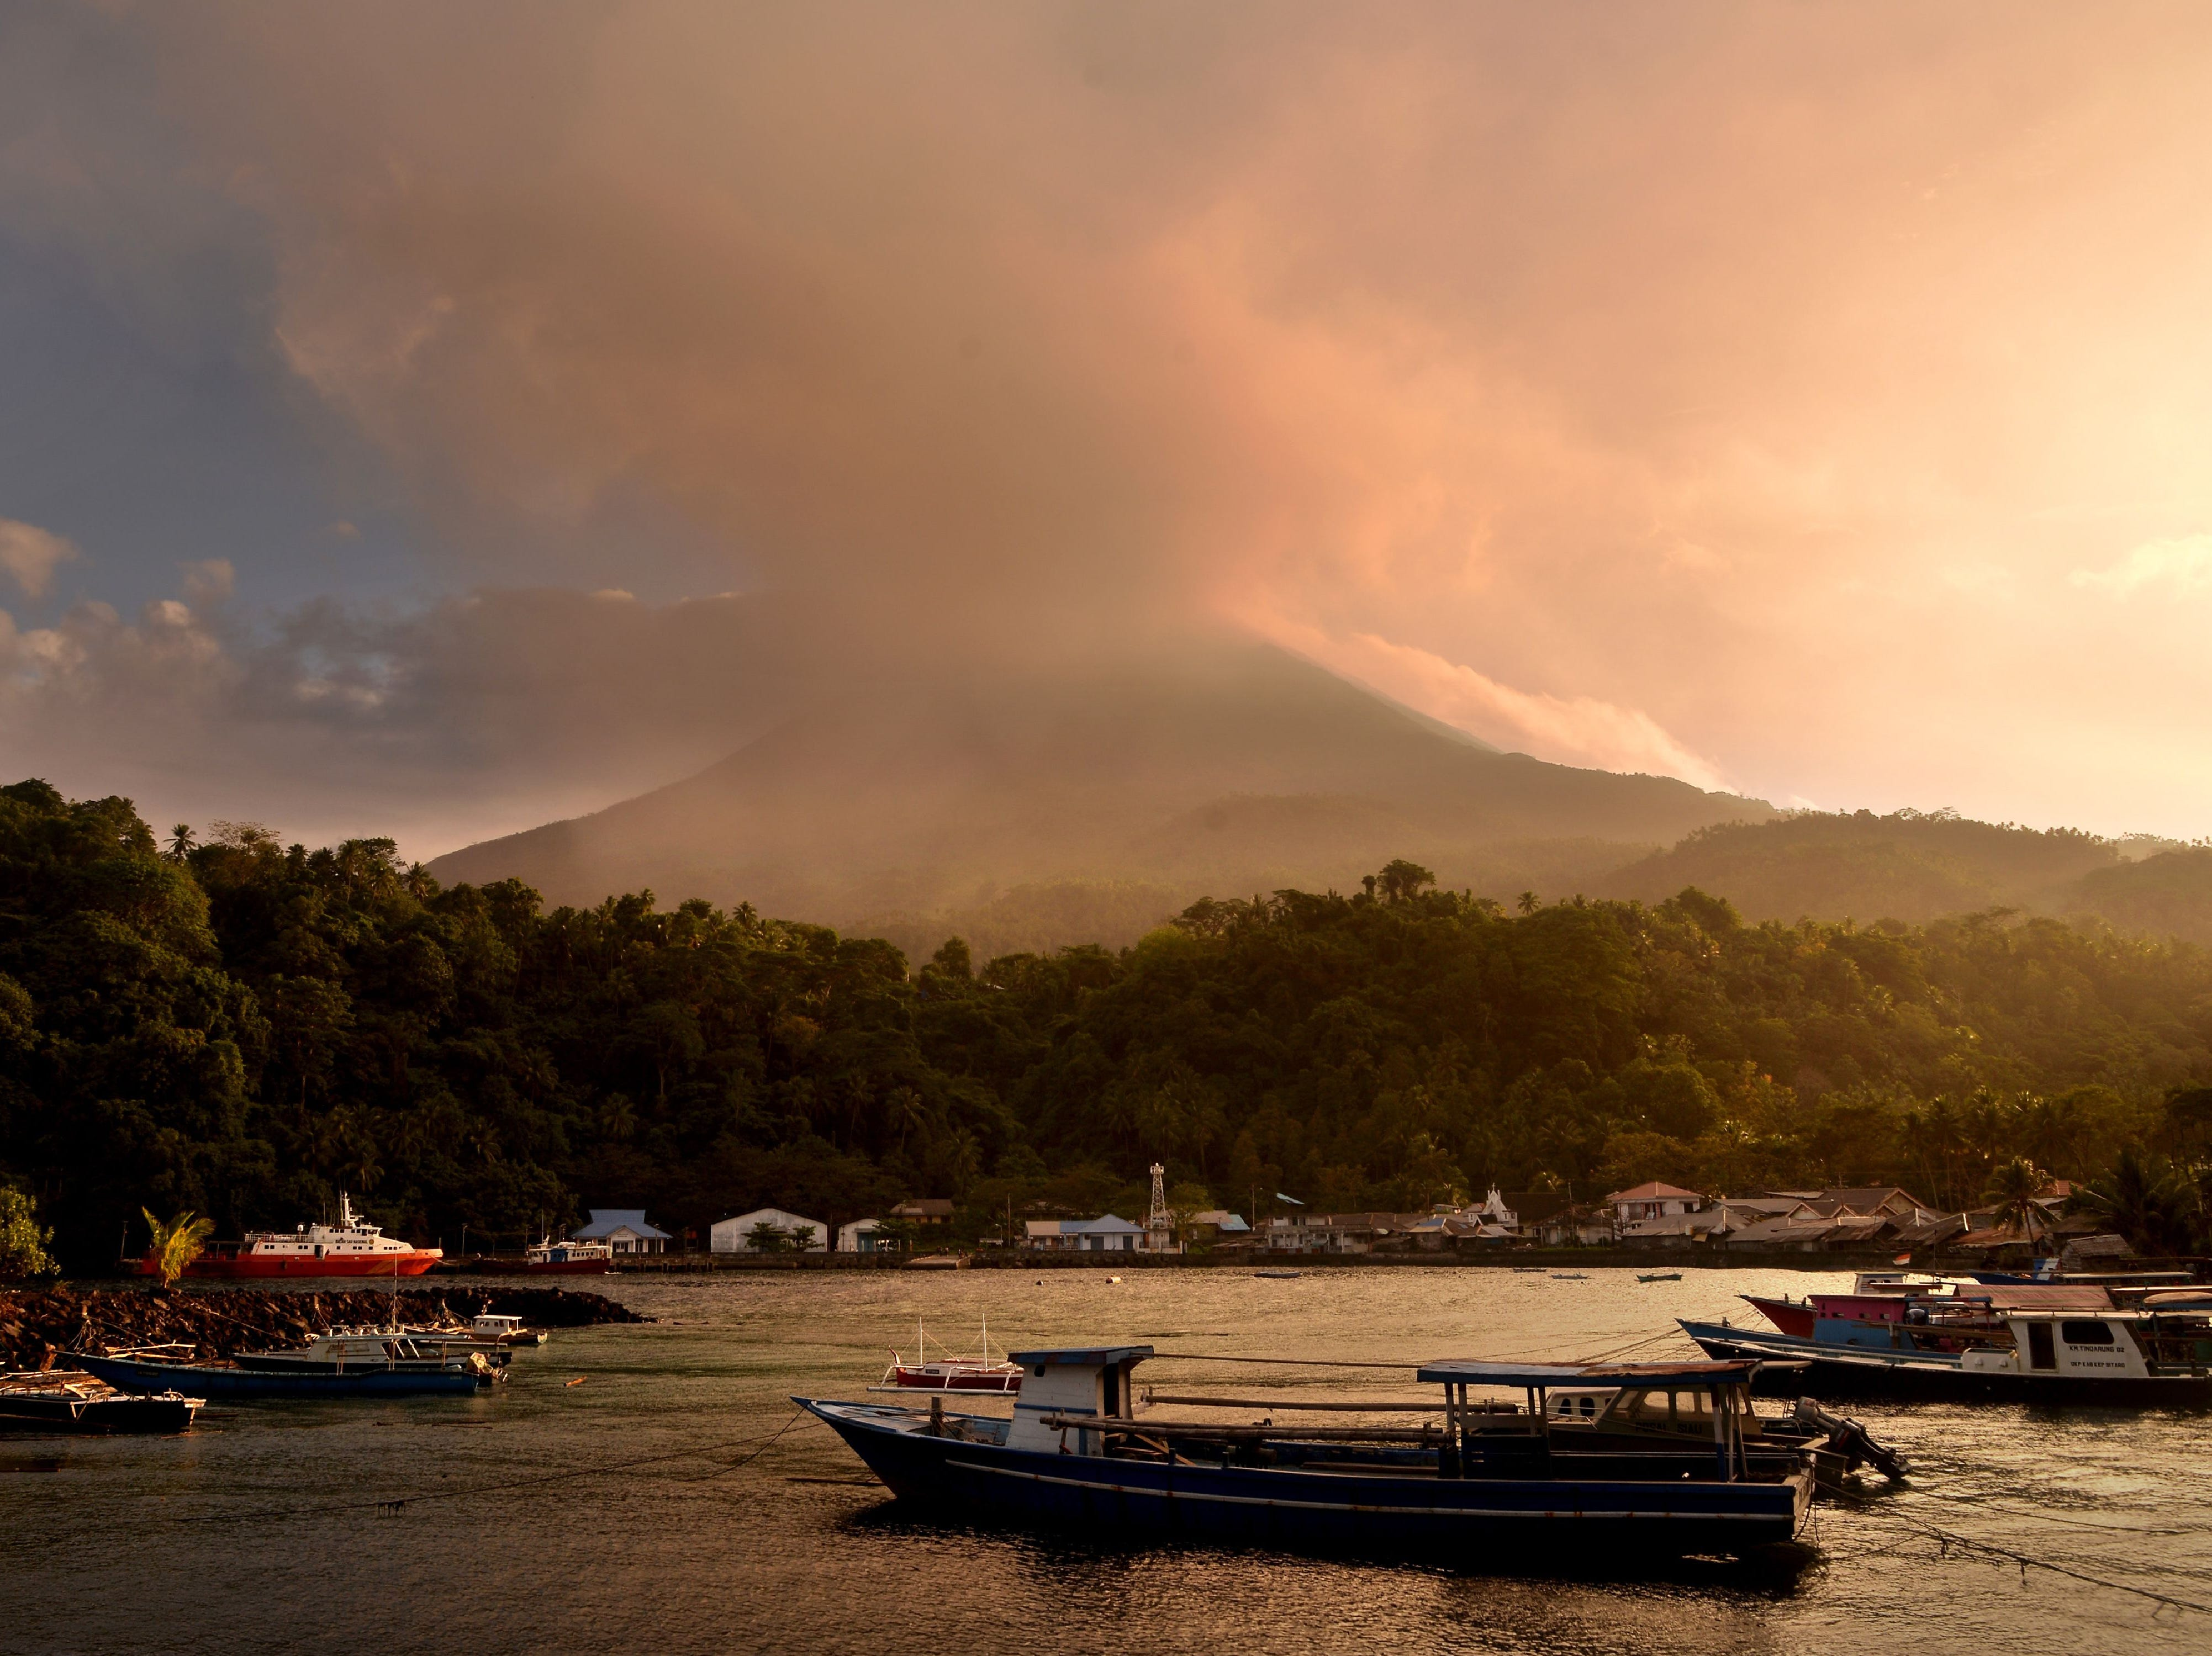 This picture taken at Pehe port on Siau island, Indonesia's North Sulawesi province, shows the Karangetang volcano spewing smoke on Feb. 7, 2019. The volcano has been active and forced dozens of people to evacuate on Feb. 4.